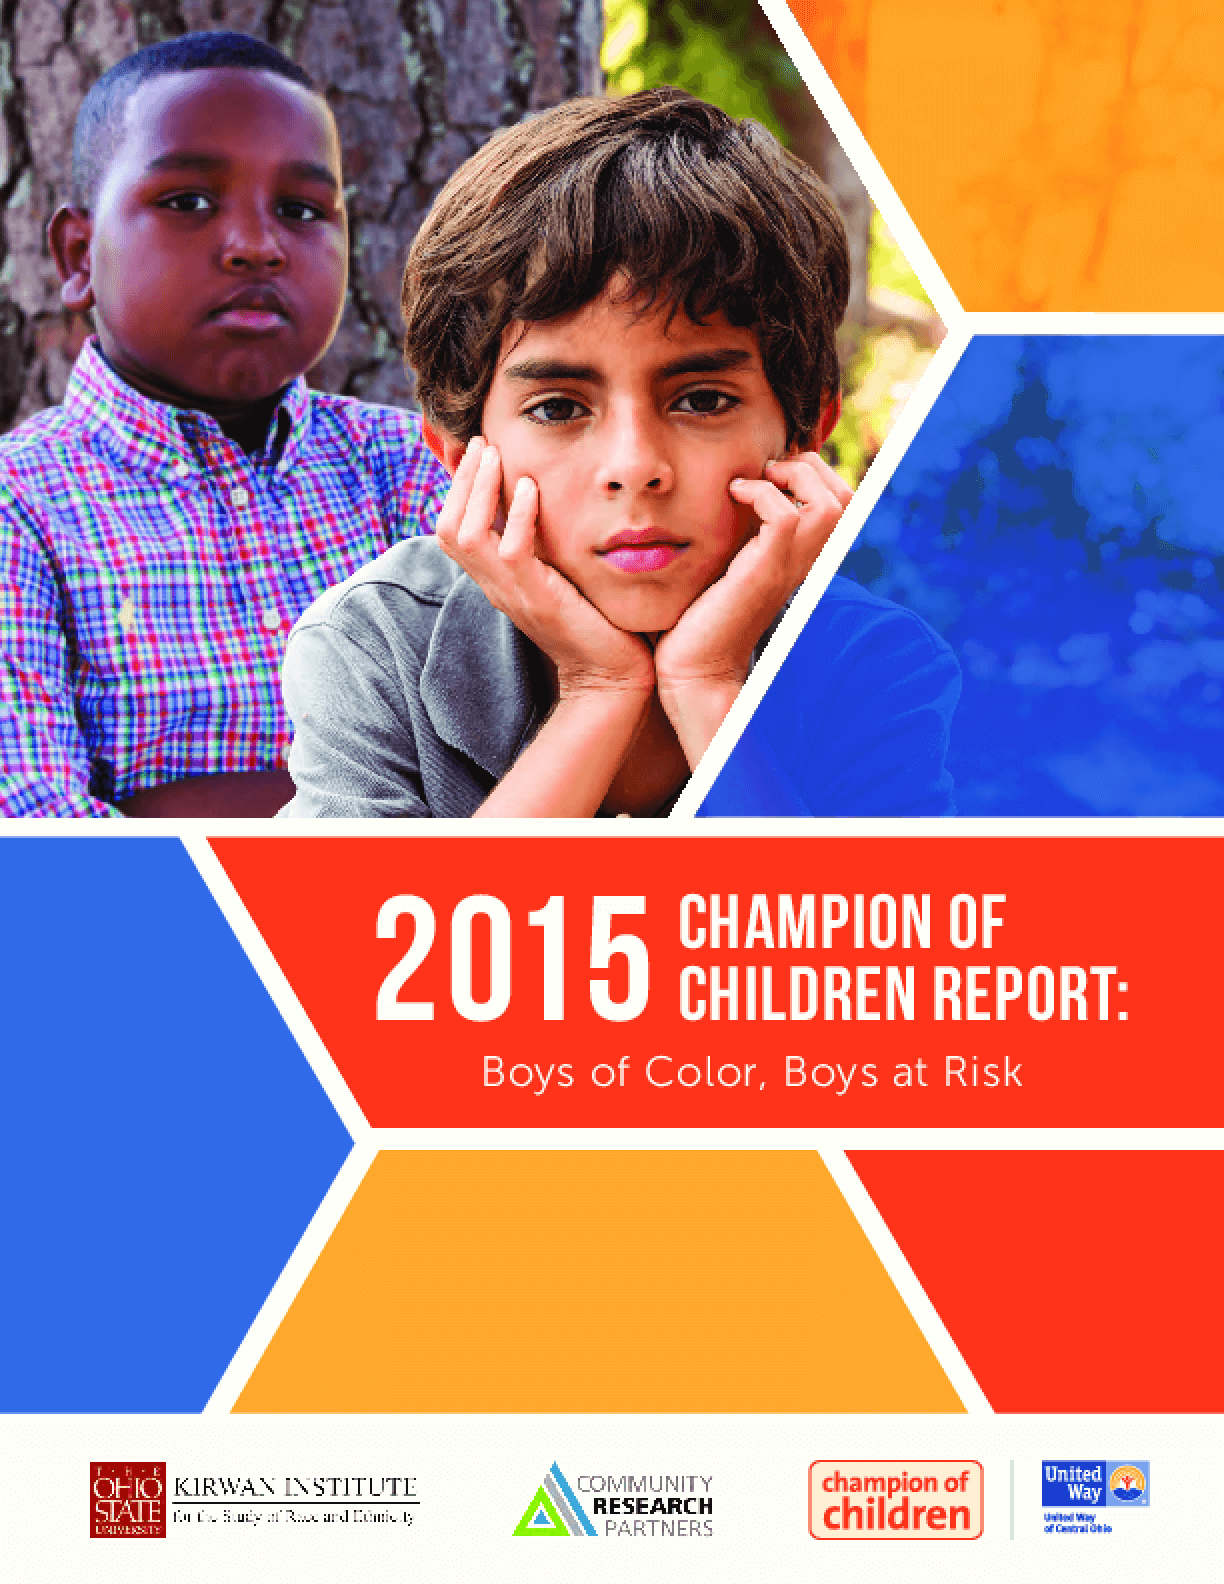 2015 Champion of Children: Boys of Color, Boys at Risk Report